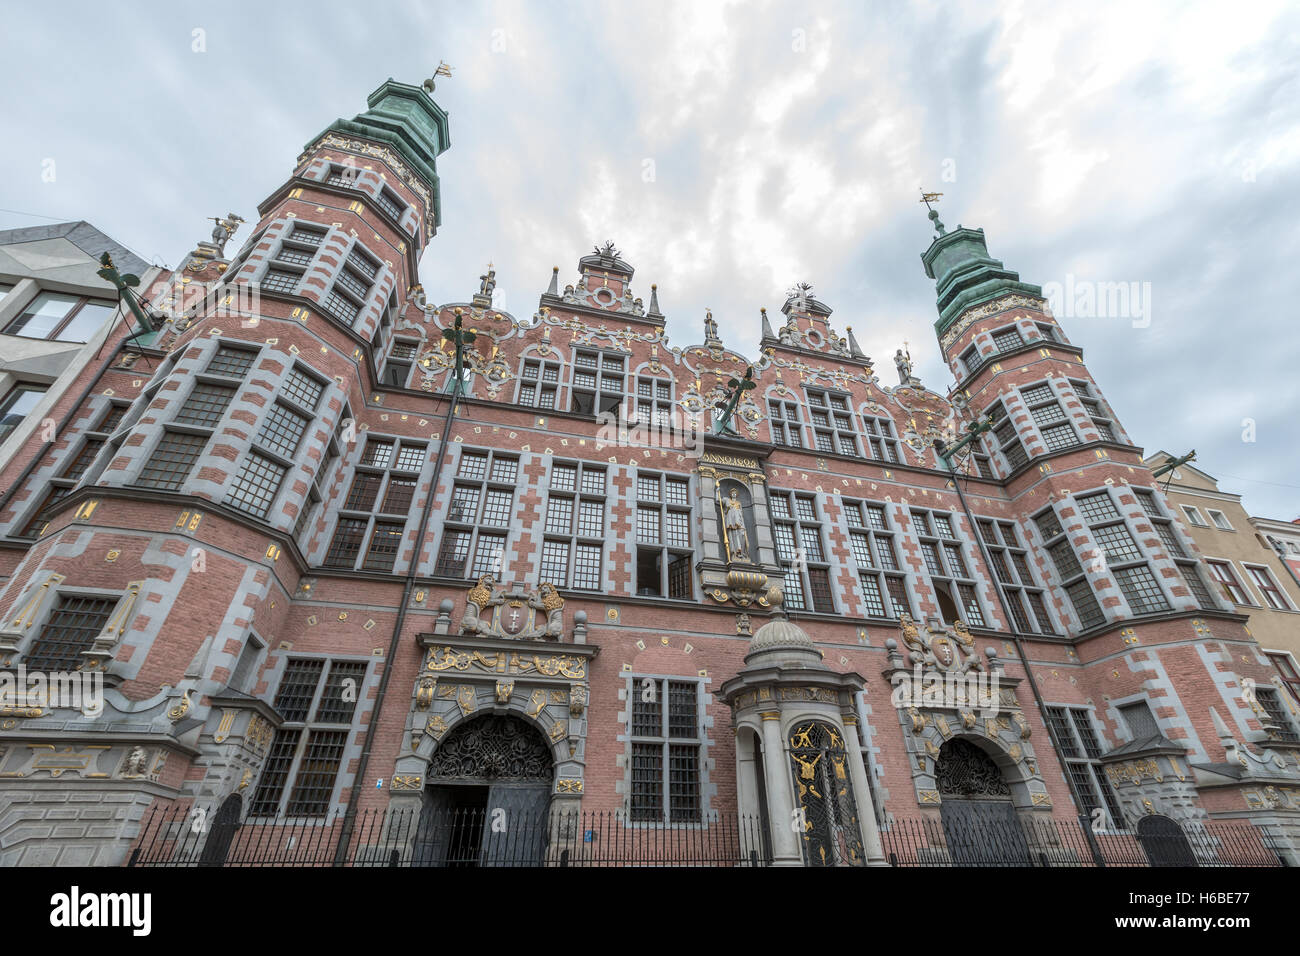 The Armoury Gdansk Poland. Dutch Renaissance architecture - Stock Image